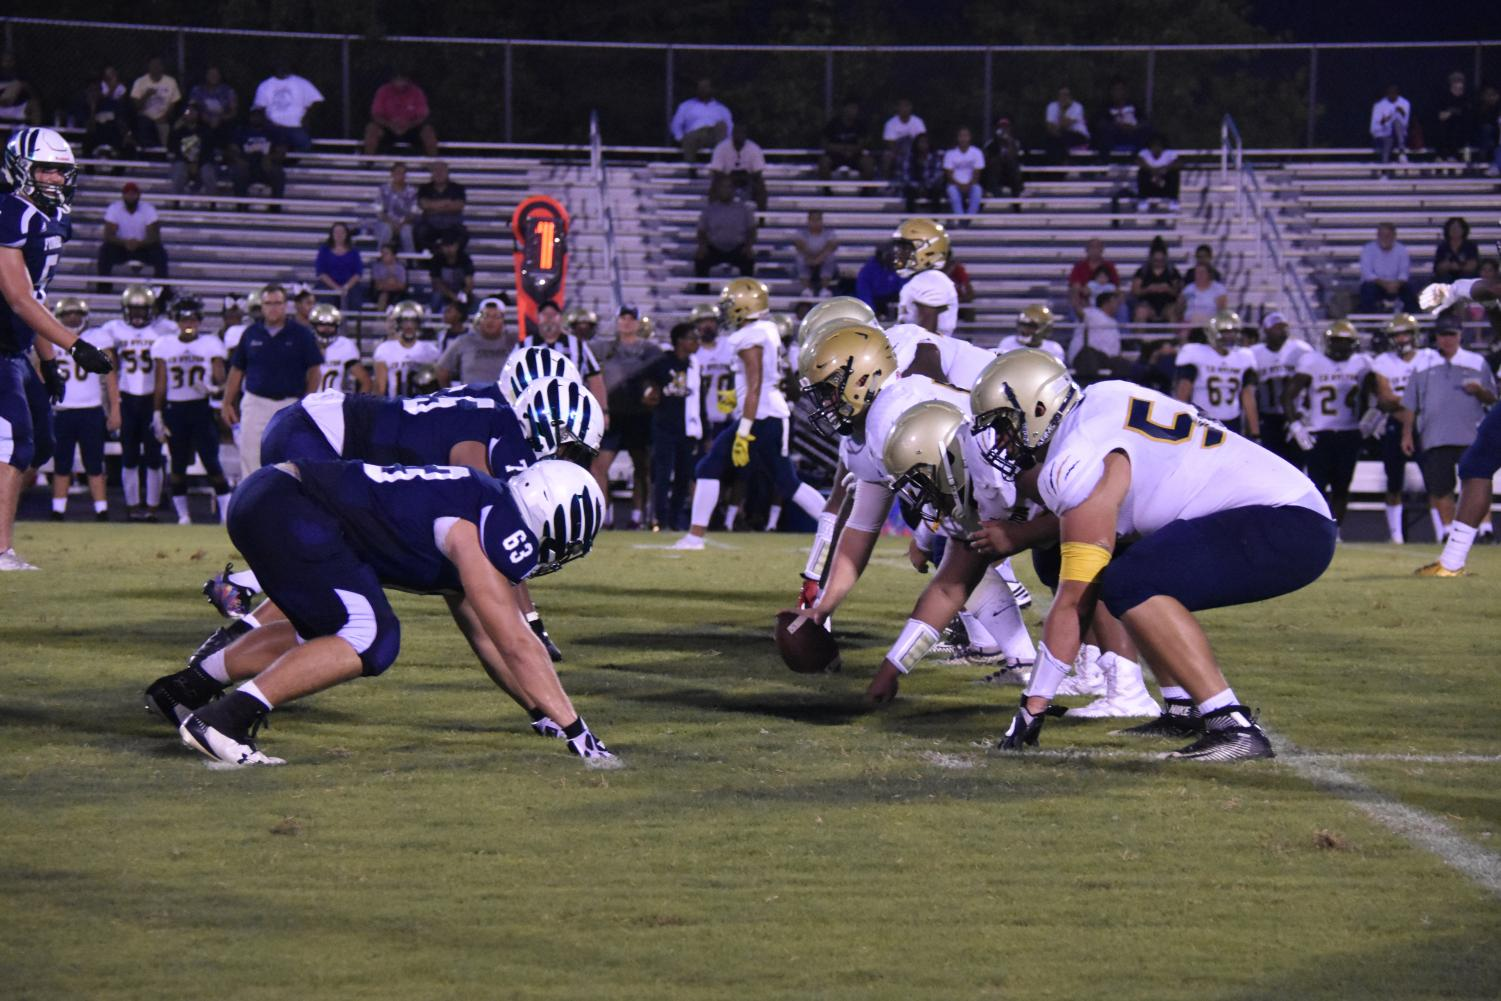 Varsity Football vs Hylton.